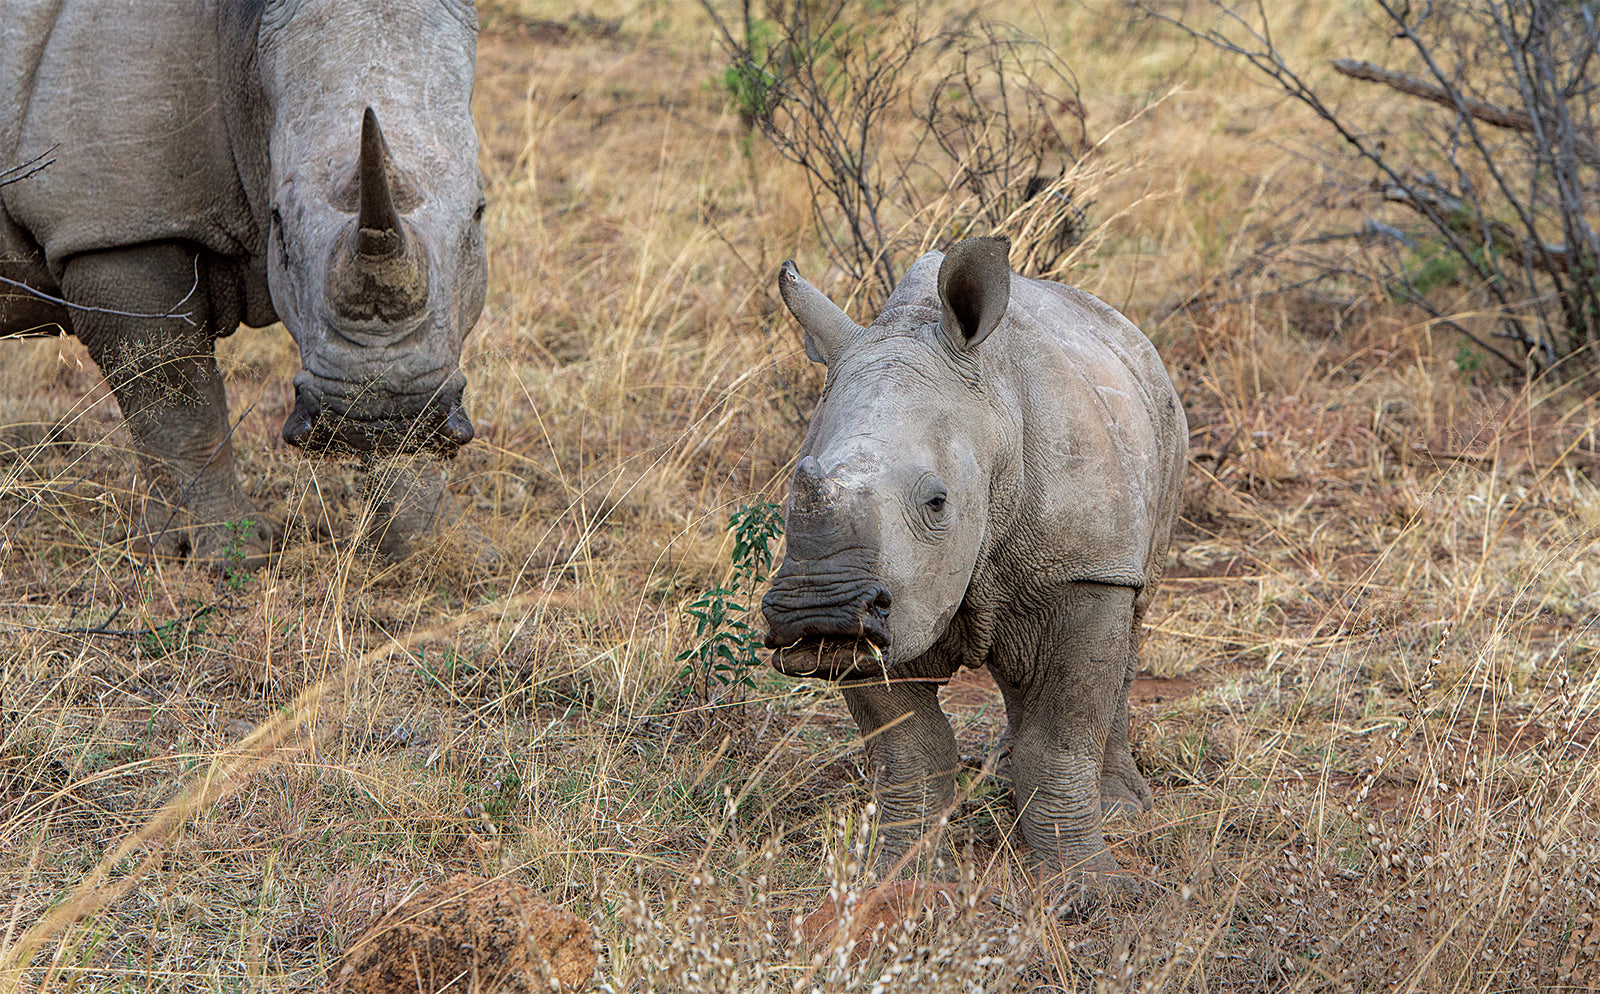 The story of the rhino orphans